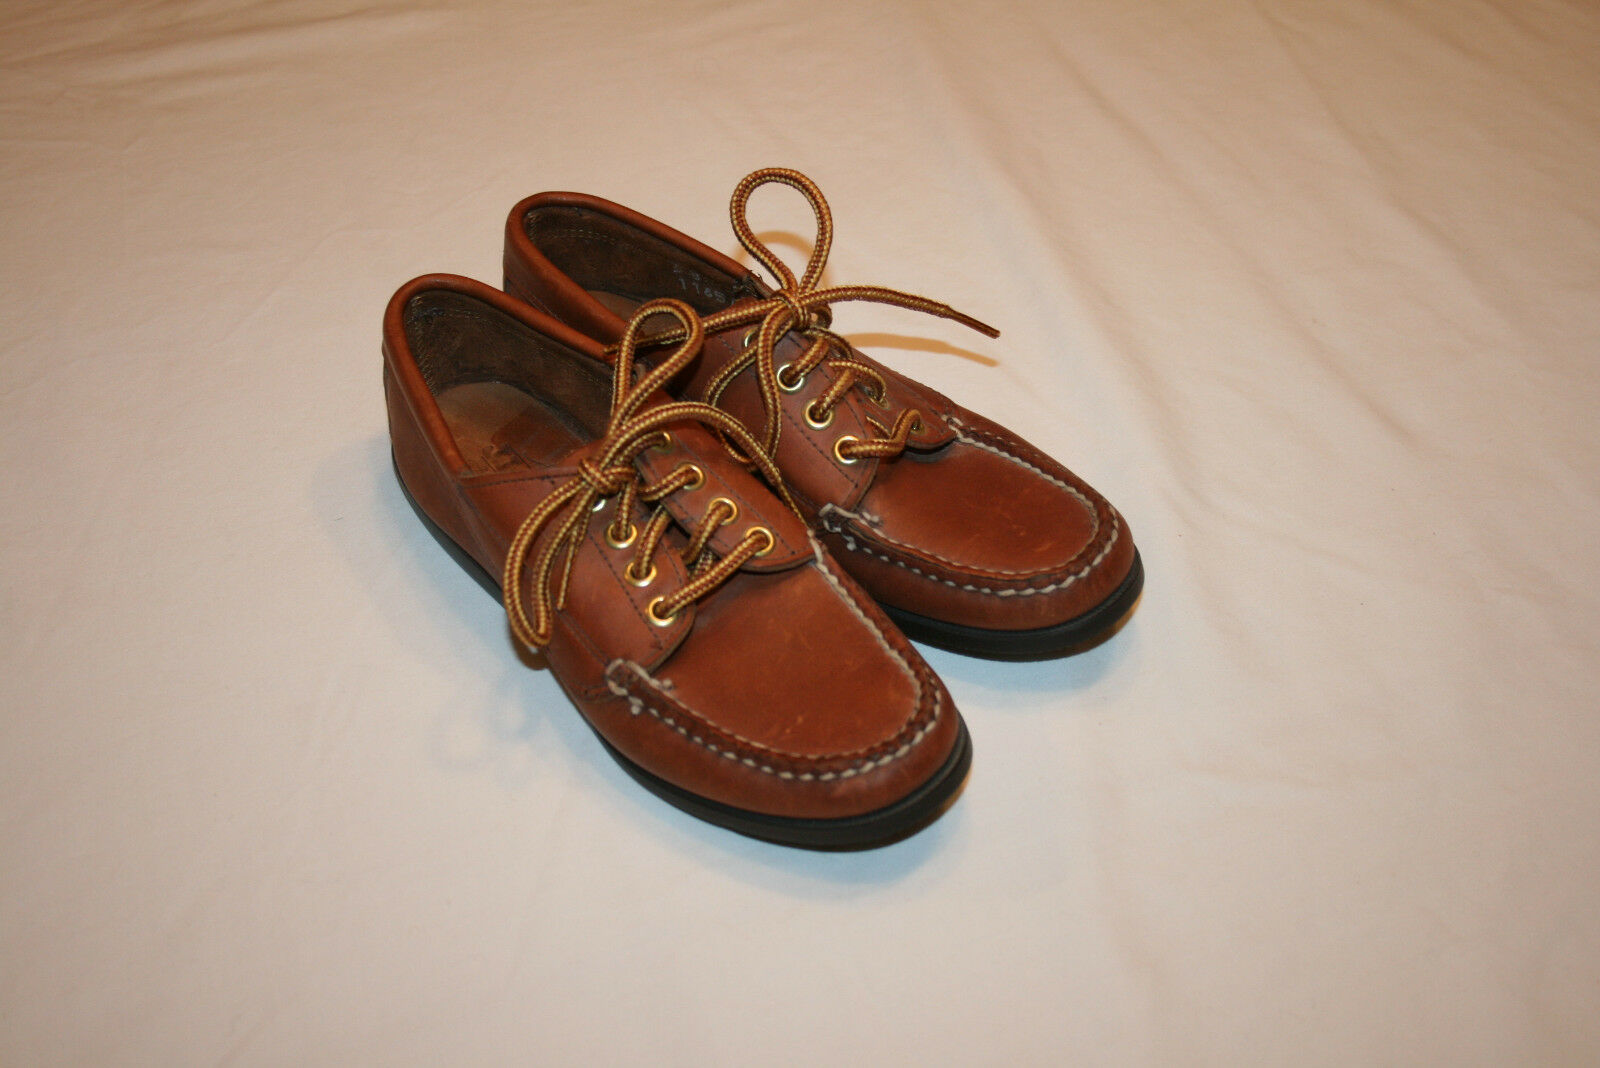 HandSewn COOMBS Leather démarrage chaussures Moccasins chaussures femmes 5B NWOT Maine USA Gokey